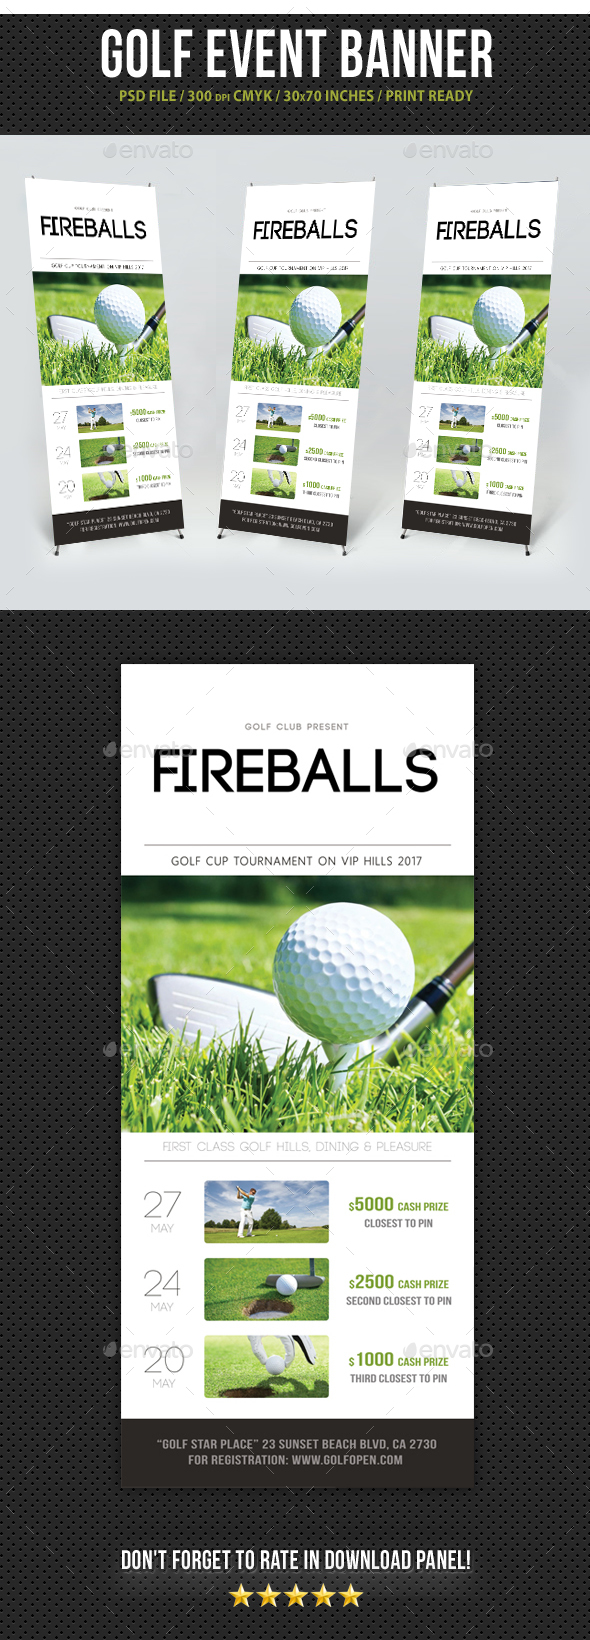 Golf Banner Roll-Up Template - Signage Print Templates